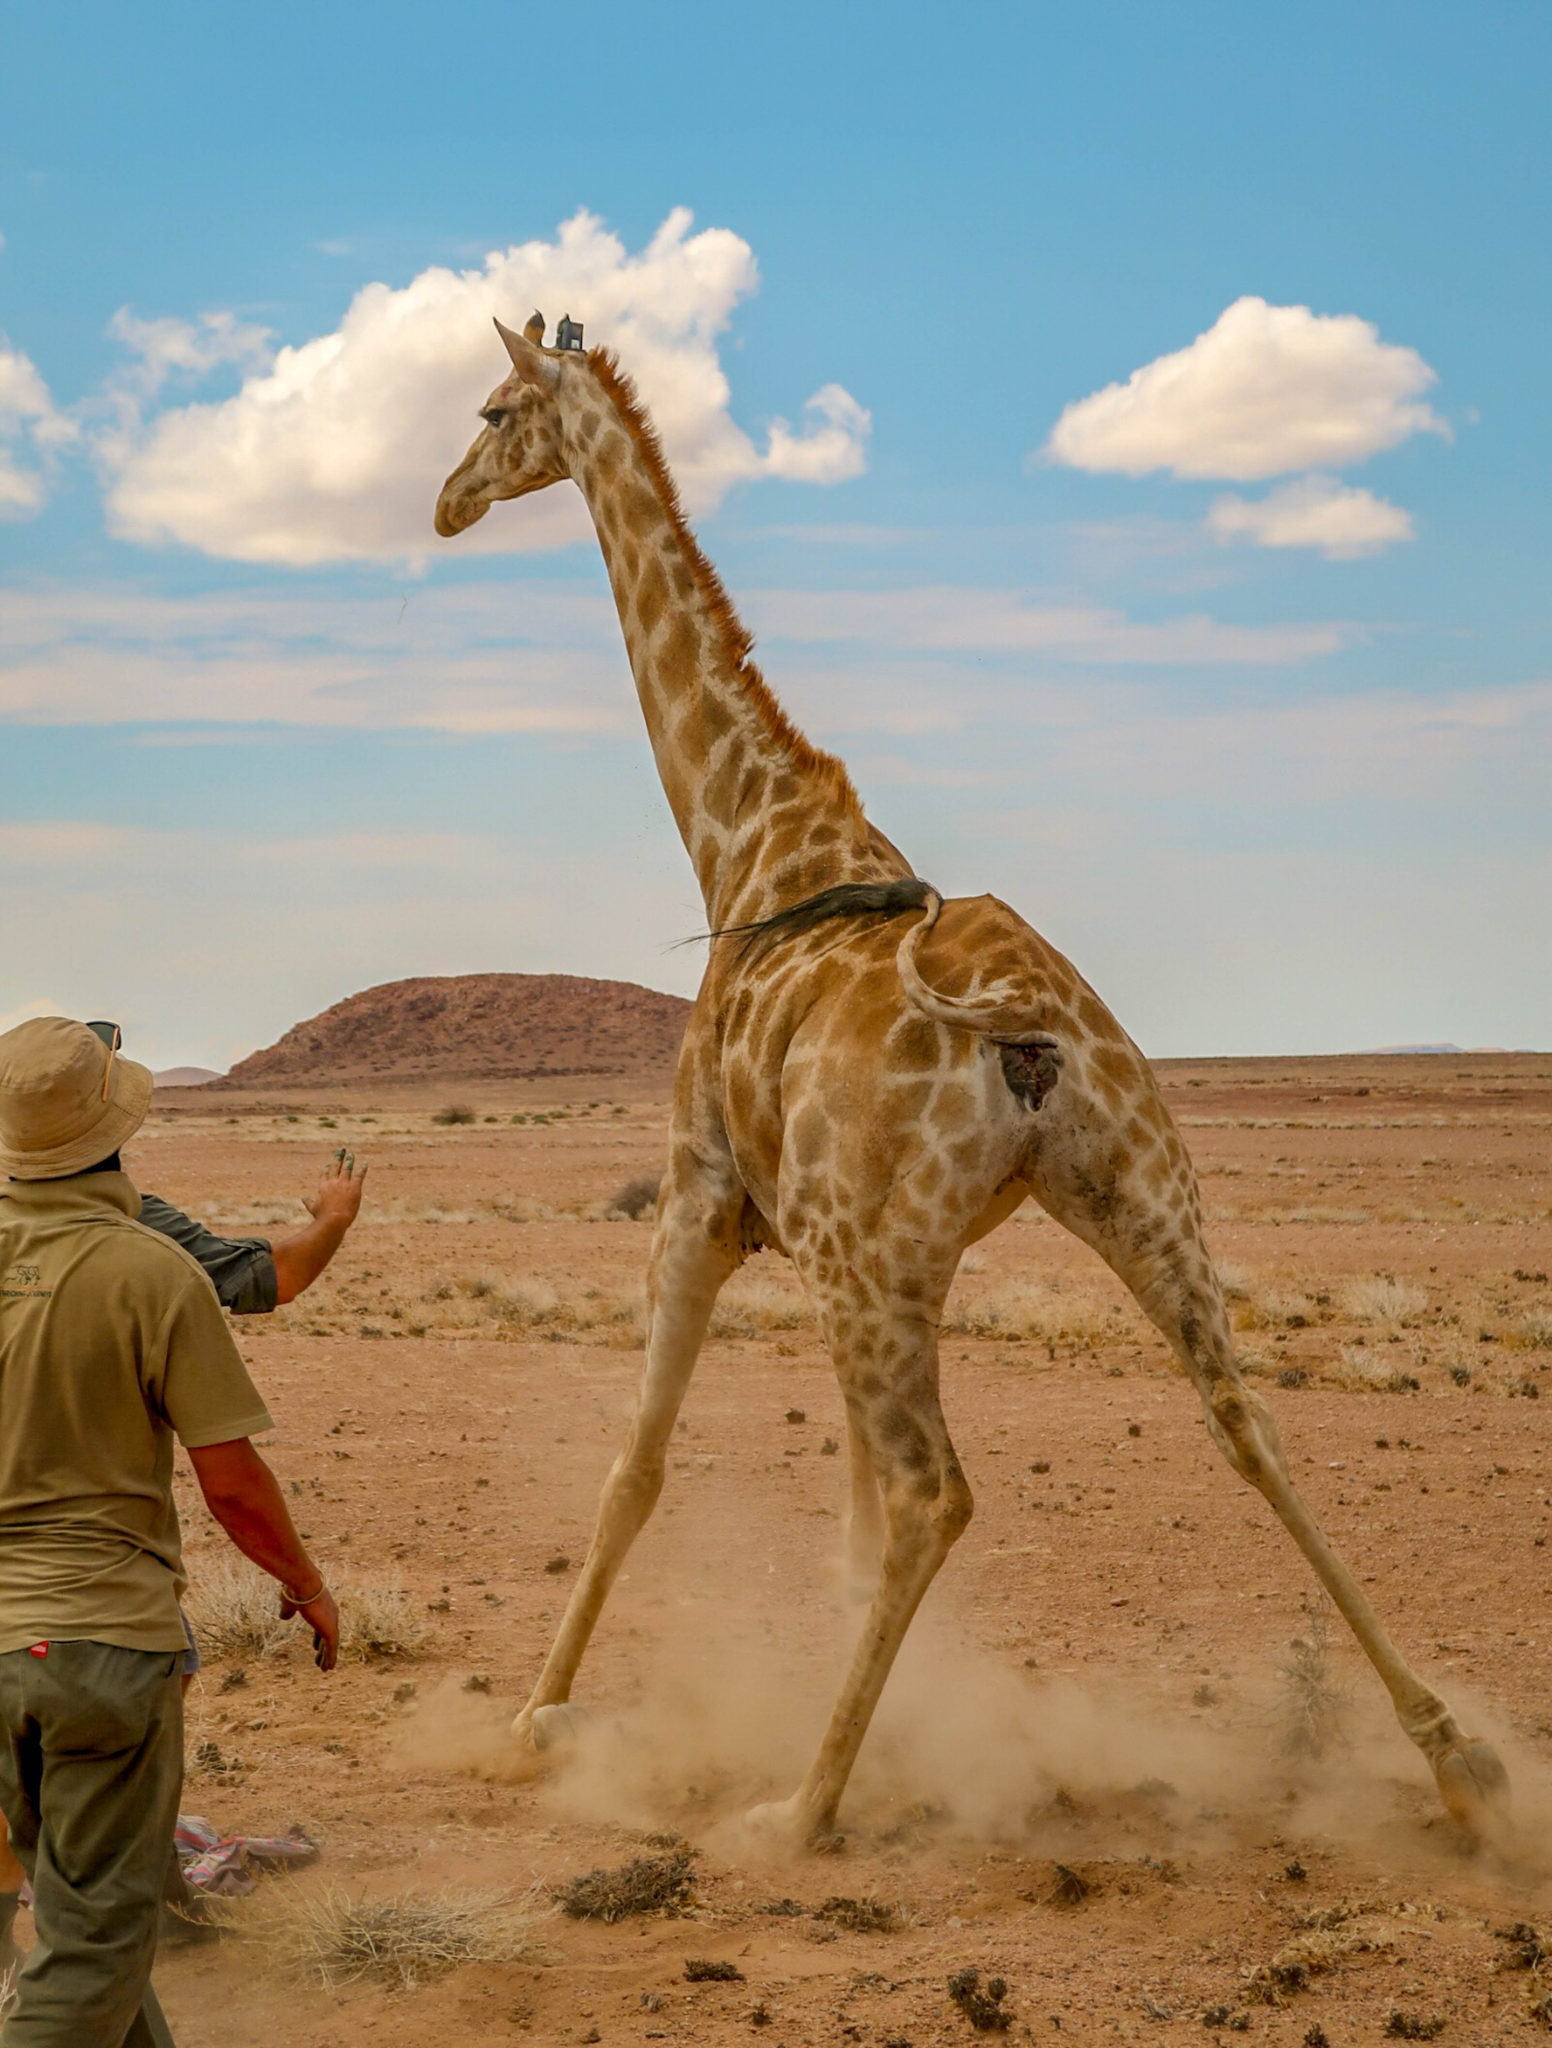 Tracking Giraffe in Namibia